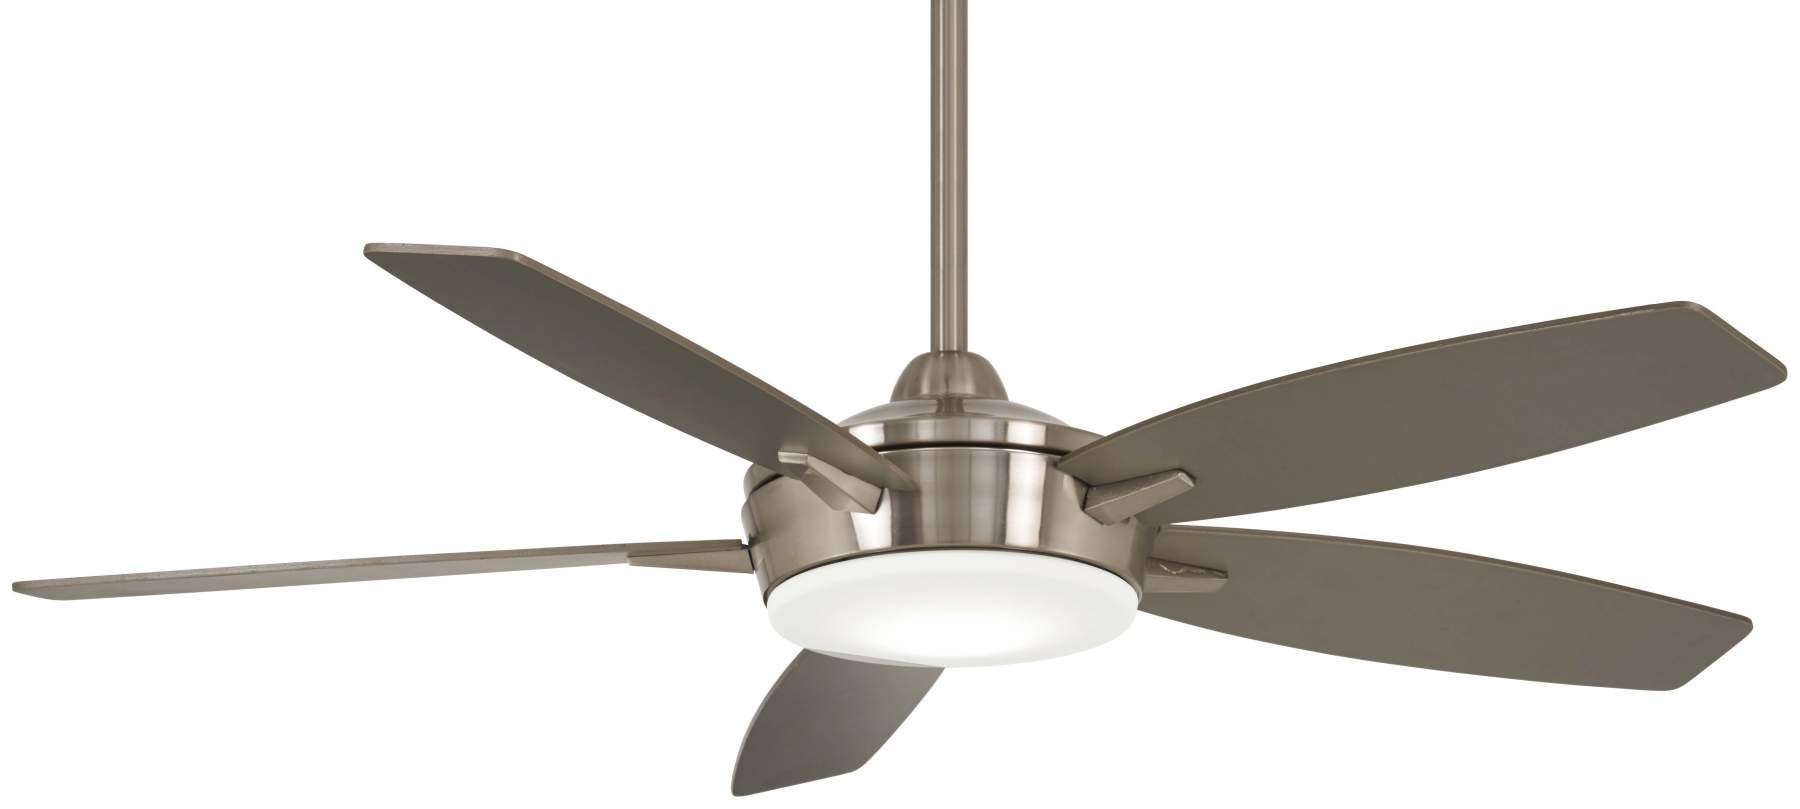 "Espace 52"" LED Ceiling Fan In Brushed Nickel And Silver"